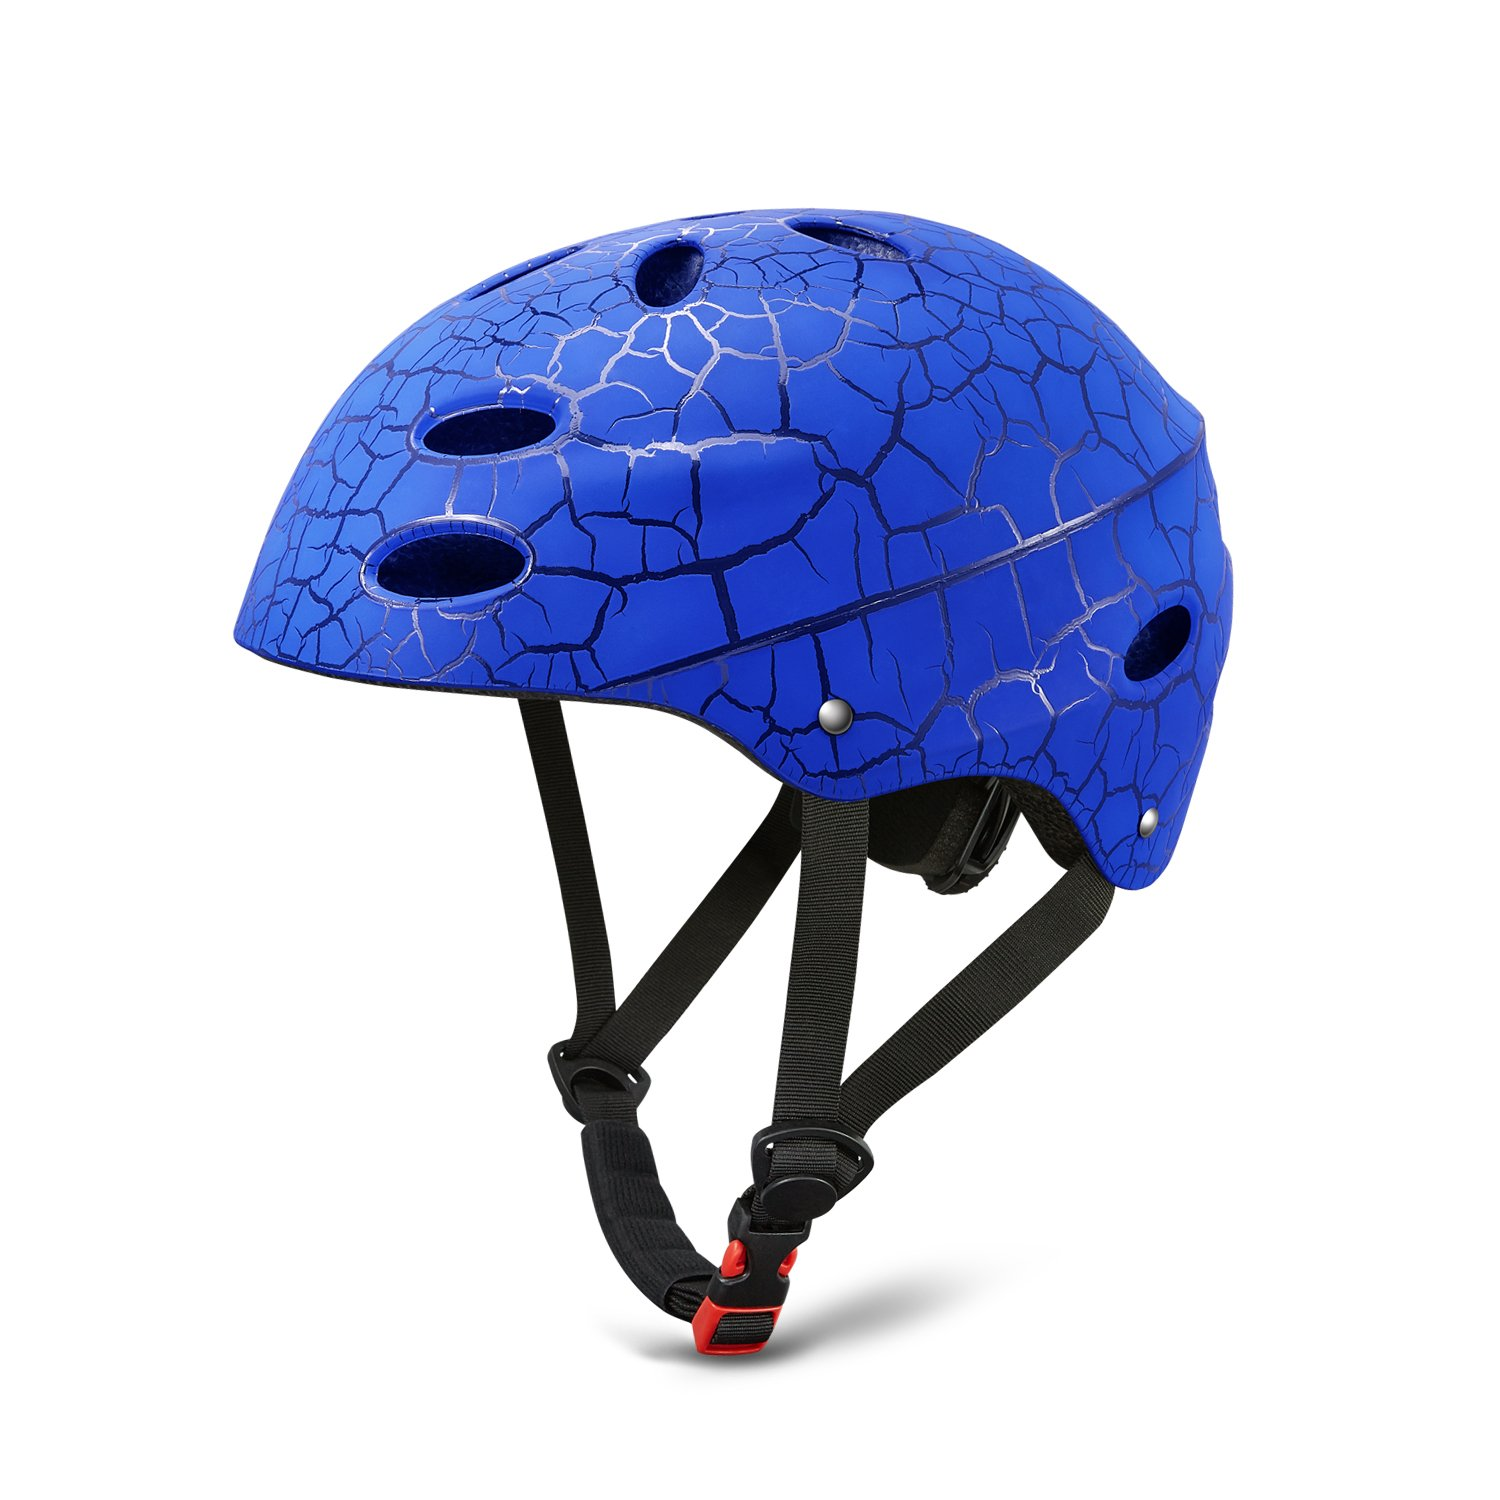 Skate Helmet,Adjust Size Multi-impact ABS Shell for Kid/Youth Cycling/Skateboarding/ Skate Inline Skating/Rollerblading KUYOU